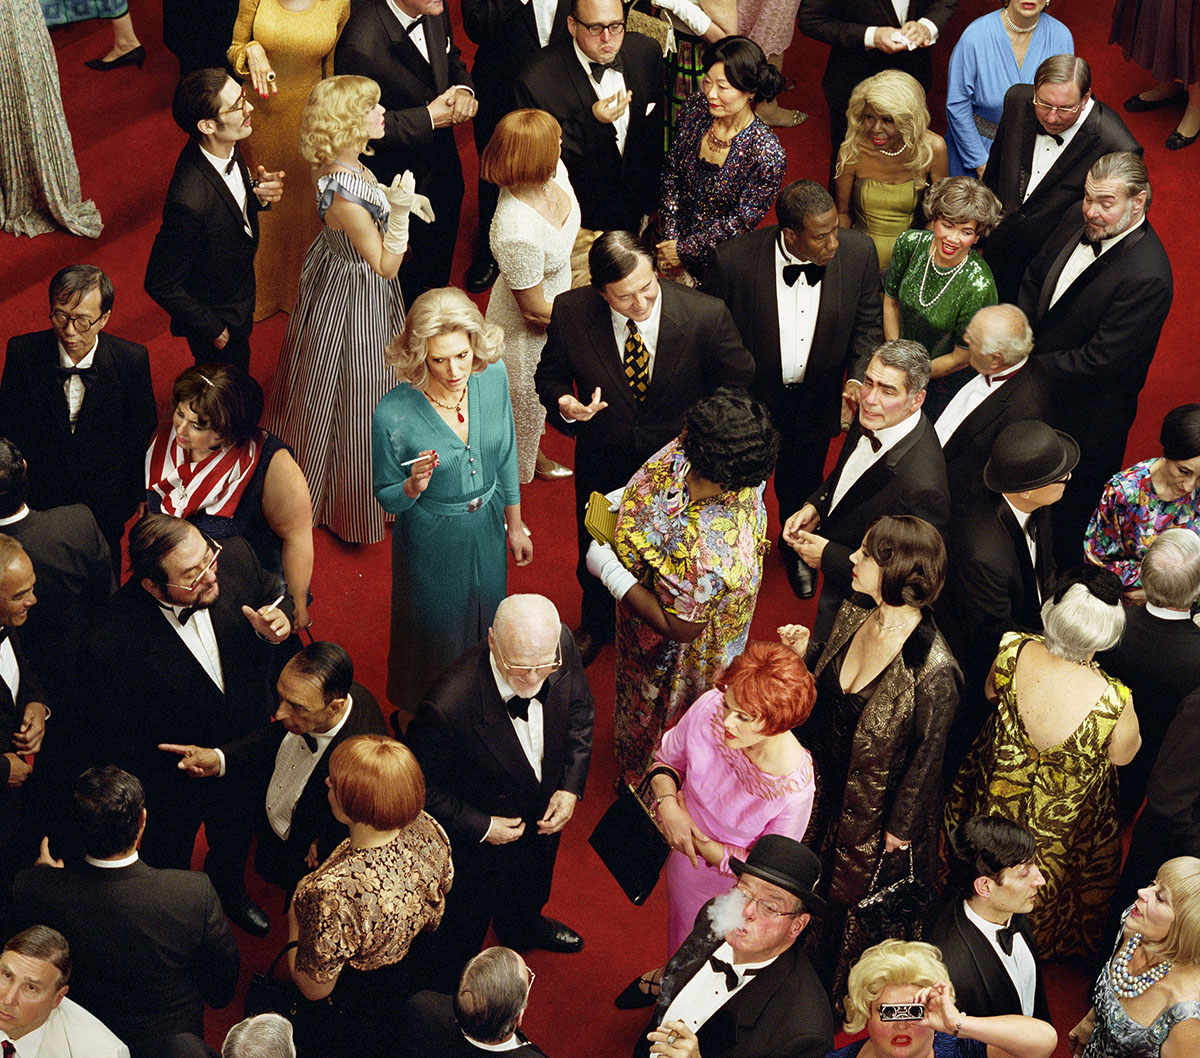 alex-prager-crowd